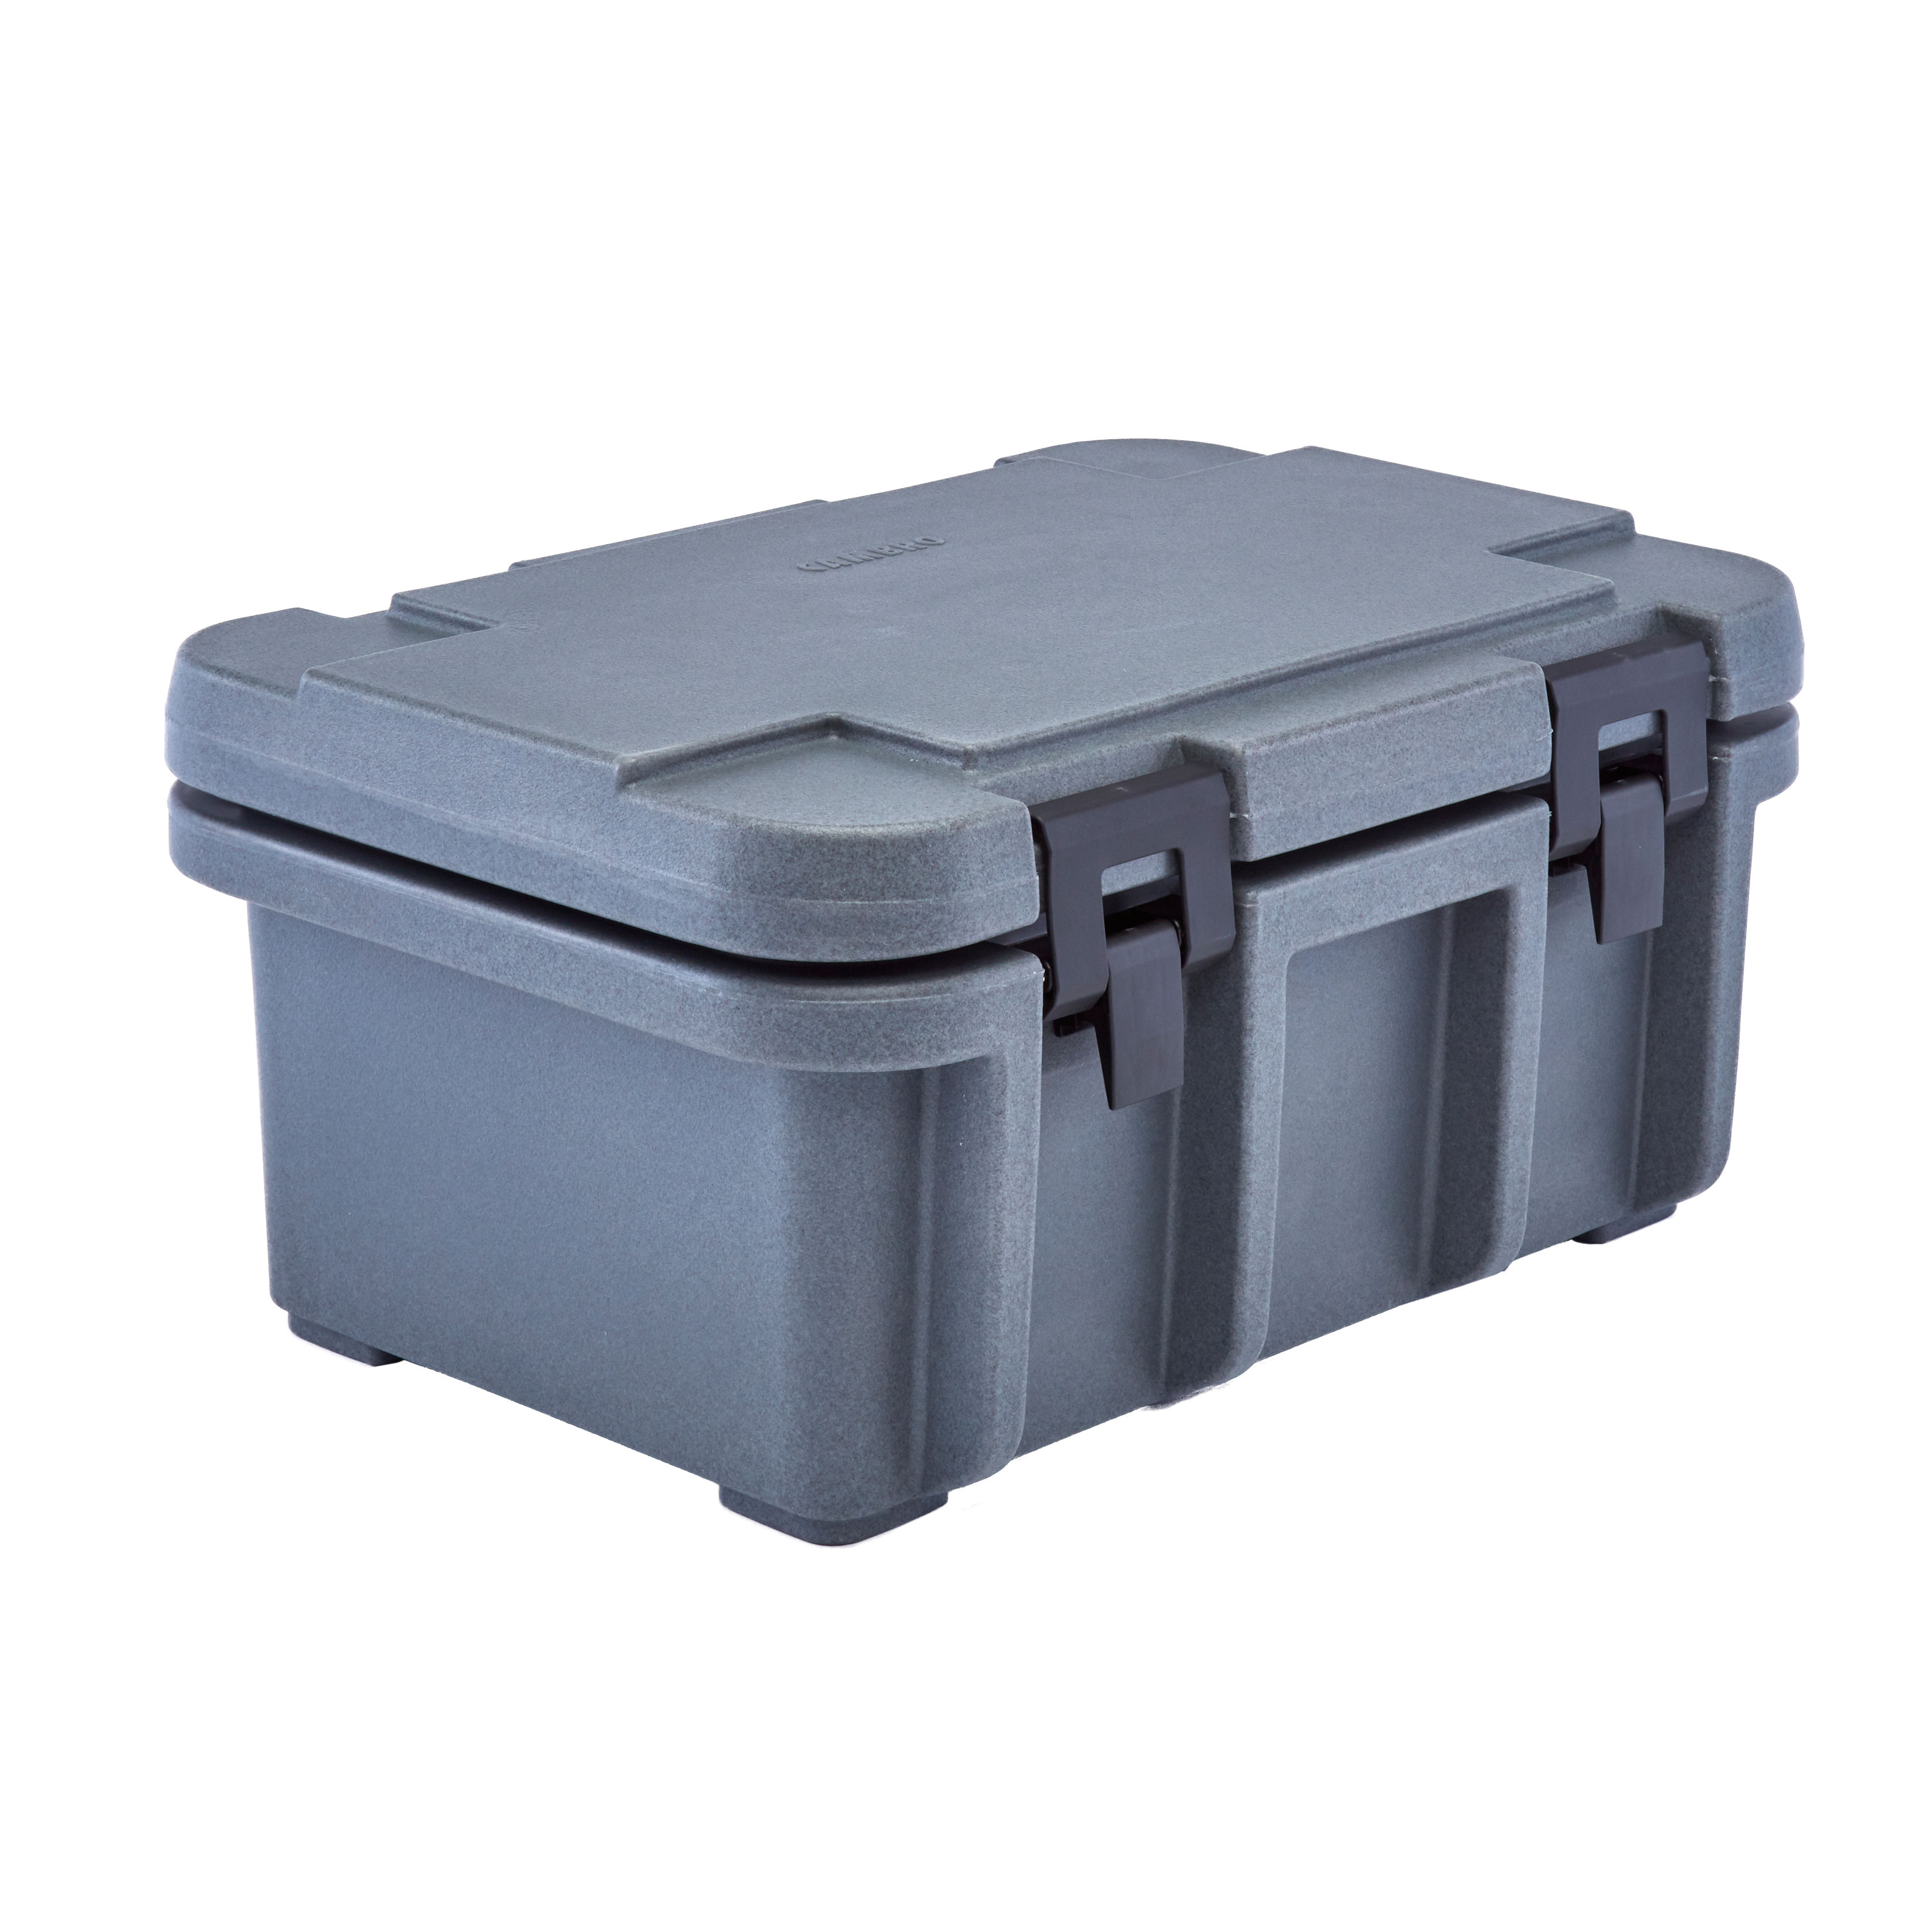 Cambro UPC180191 food pan carriers